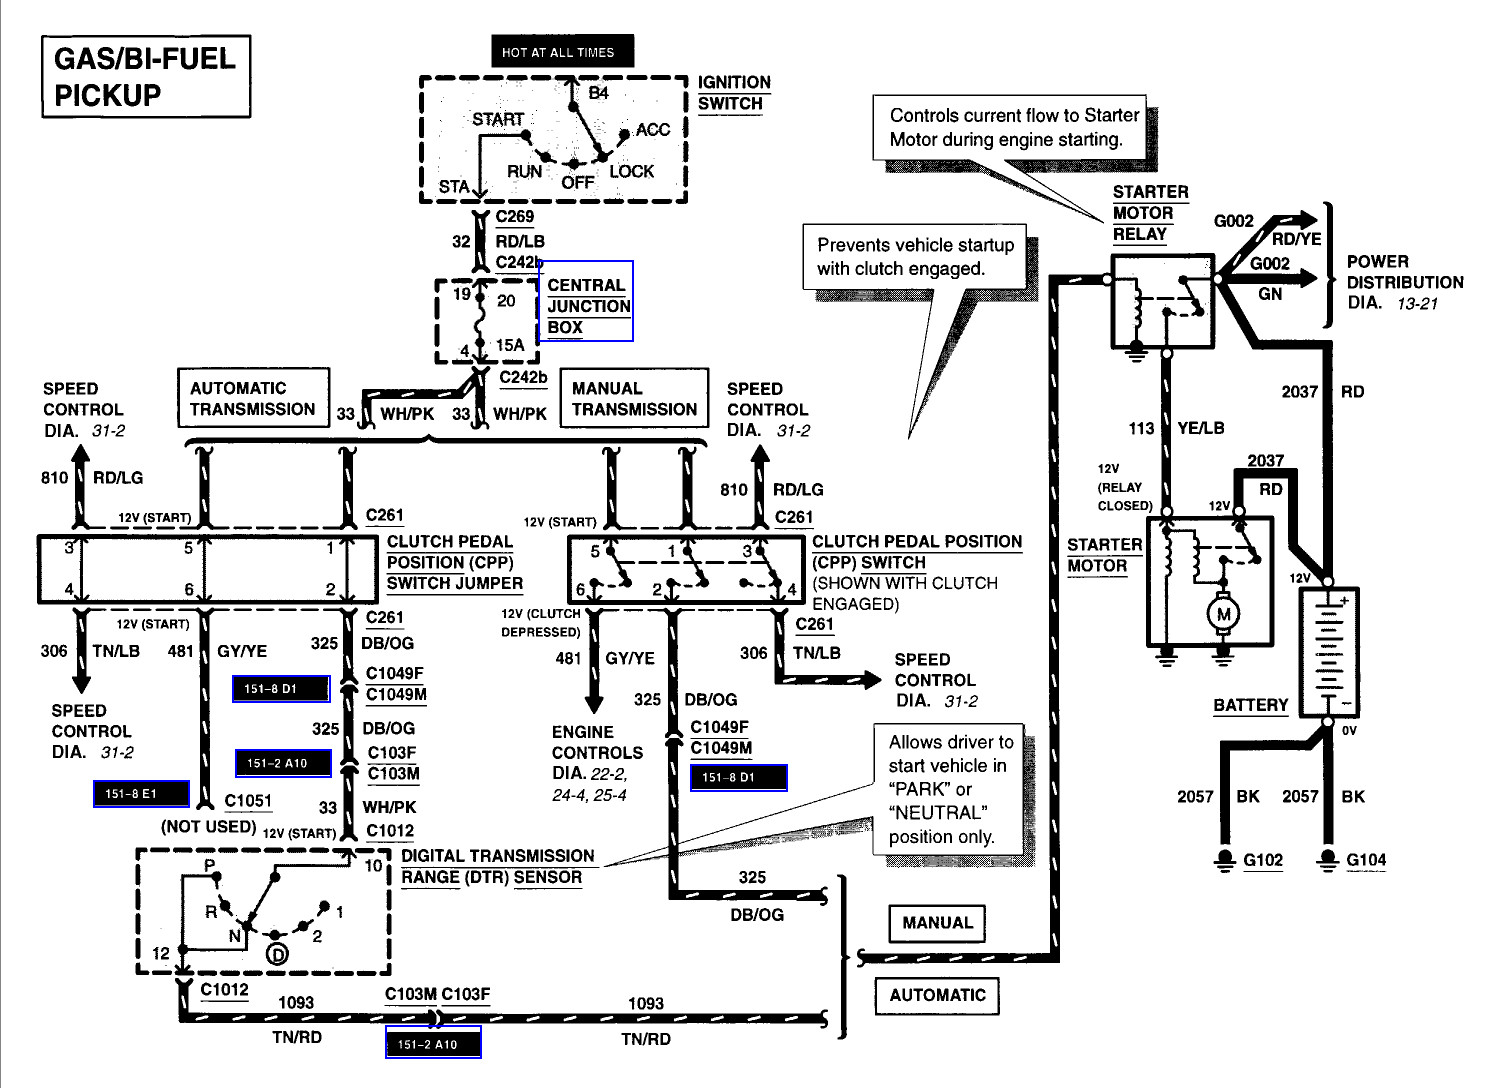 2004 Ford Excursion Wiring Diagram - Wiring Diagram Replace car-check -  car-check.miramontiseo.it | Wiring Diagram For 2000 Ford Excursion |  | car-check.miramontiseo.it